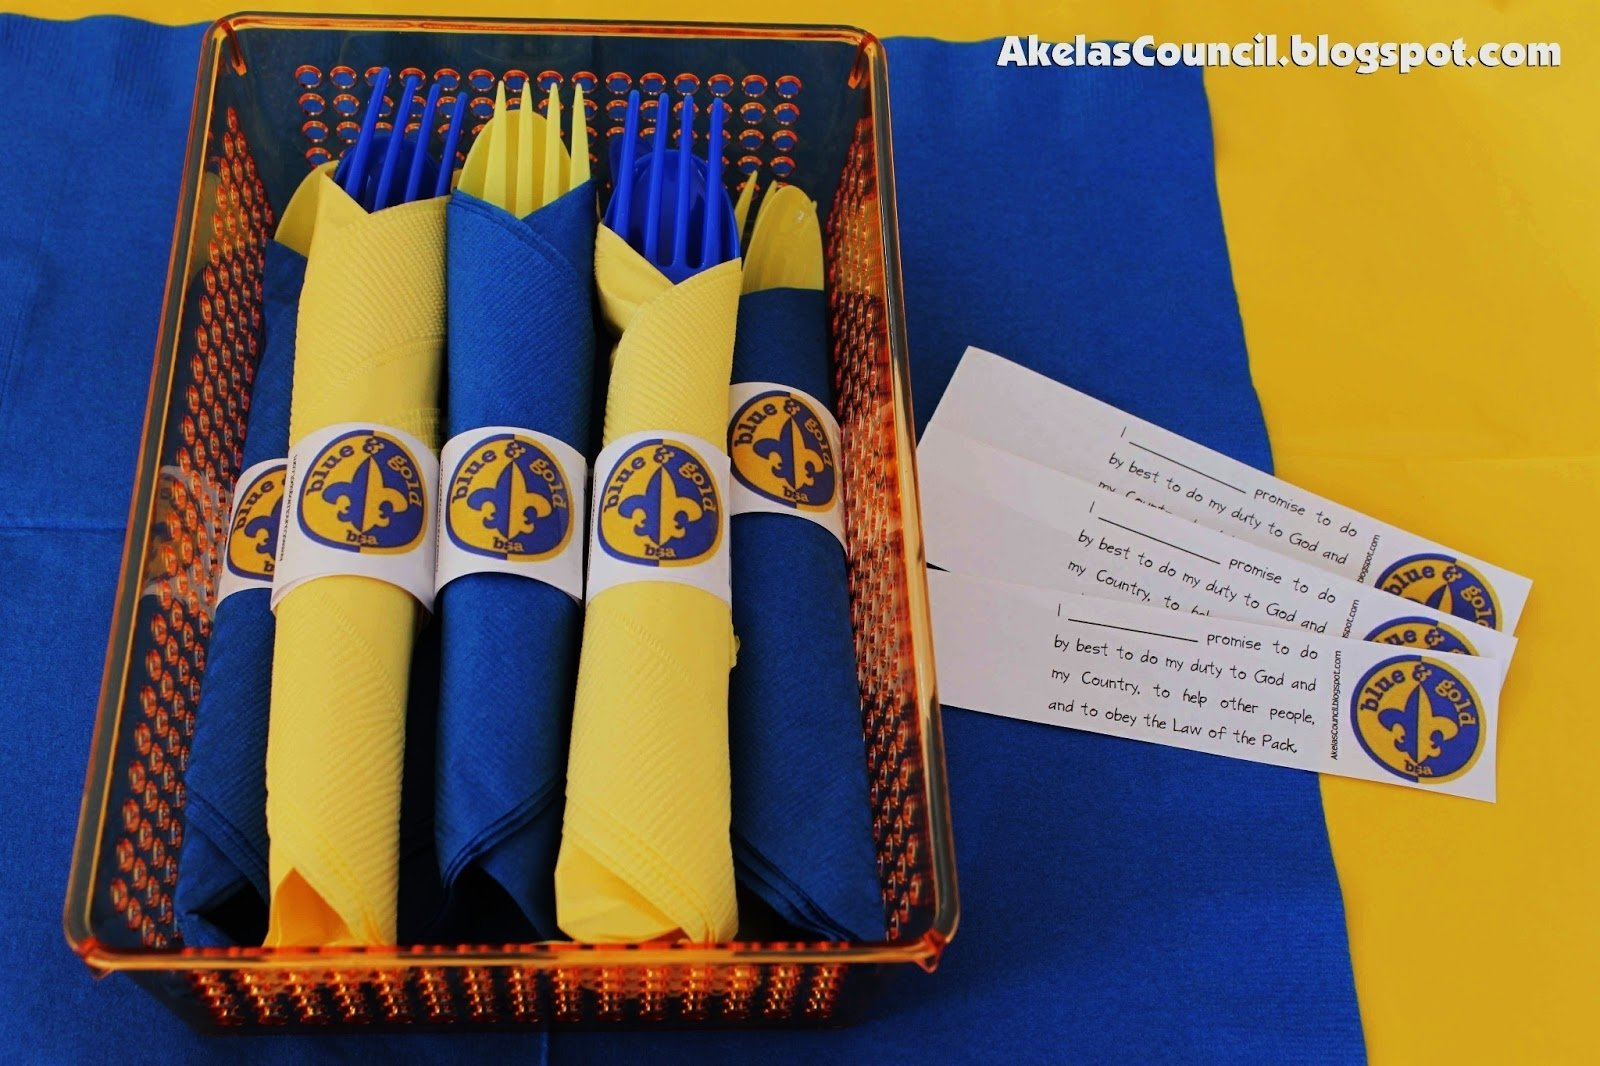 10 Stylish Cub Scout Blue And Gold Banquet Ideas akelas council cub scout leader training paper napkin ring 2020